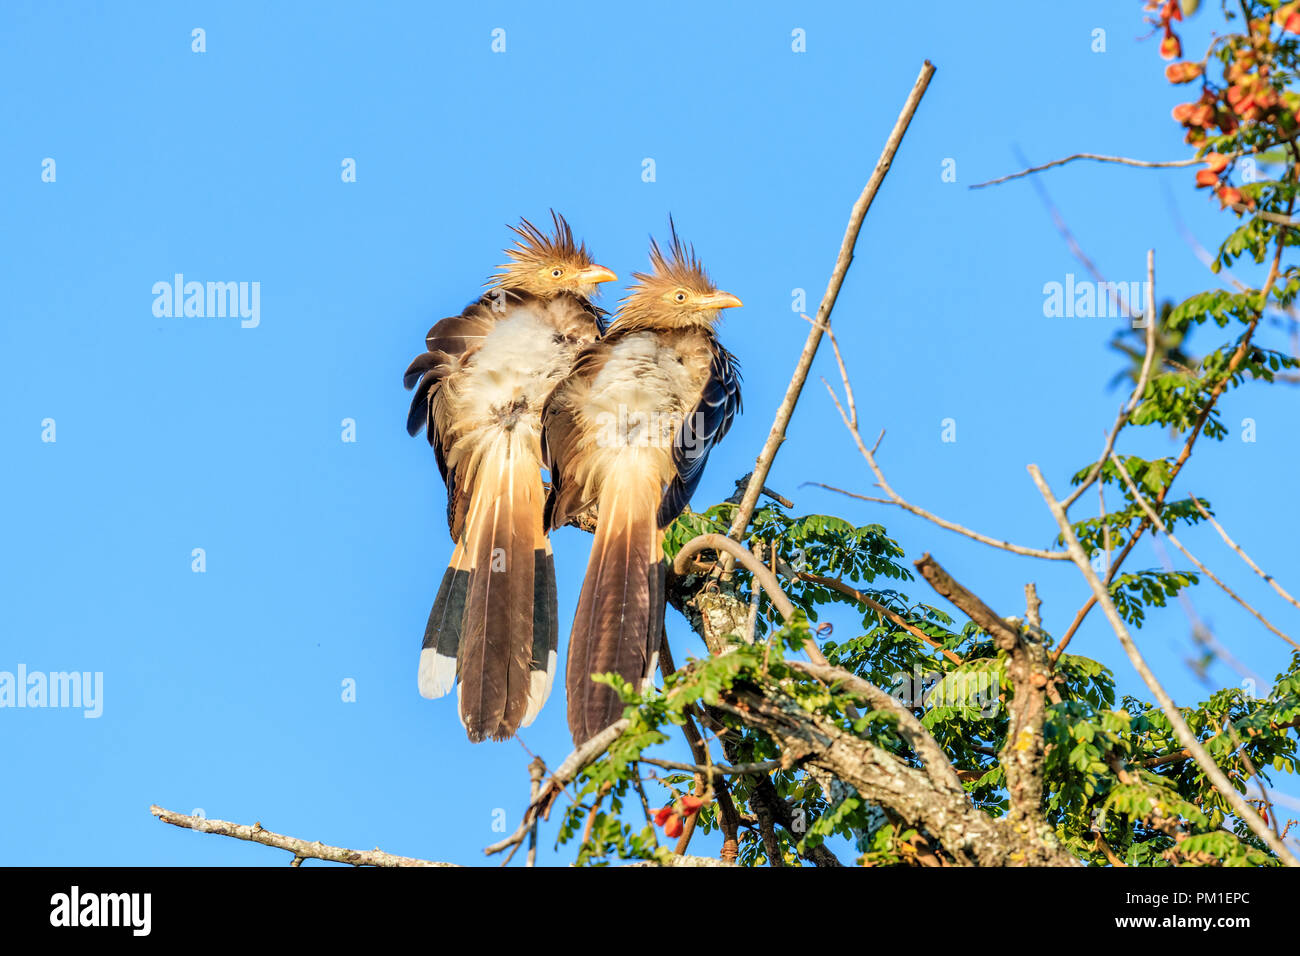 Couple of Brazilian birds on the tree, Scientific name Guira guira - Stock Image